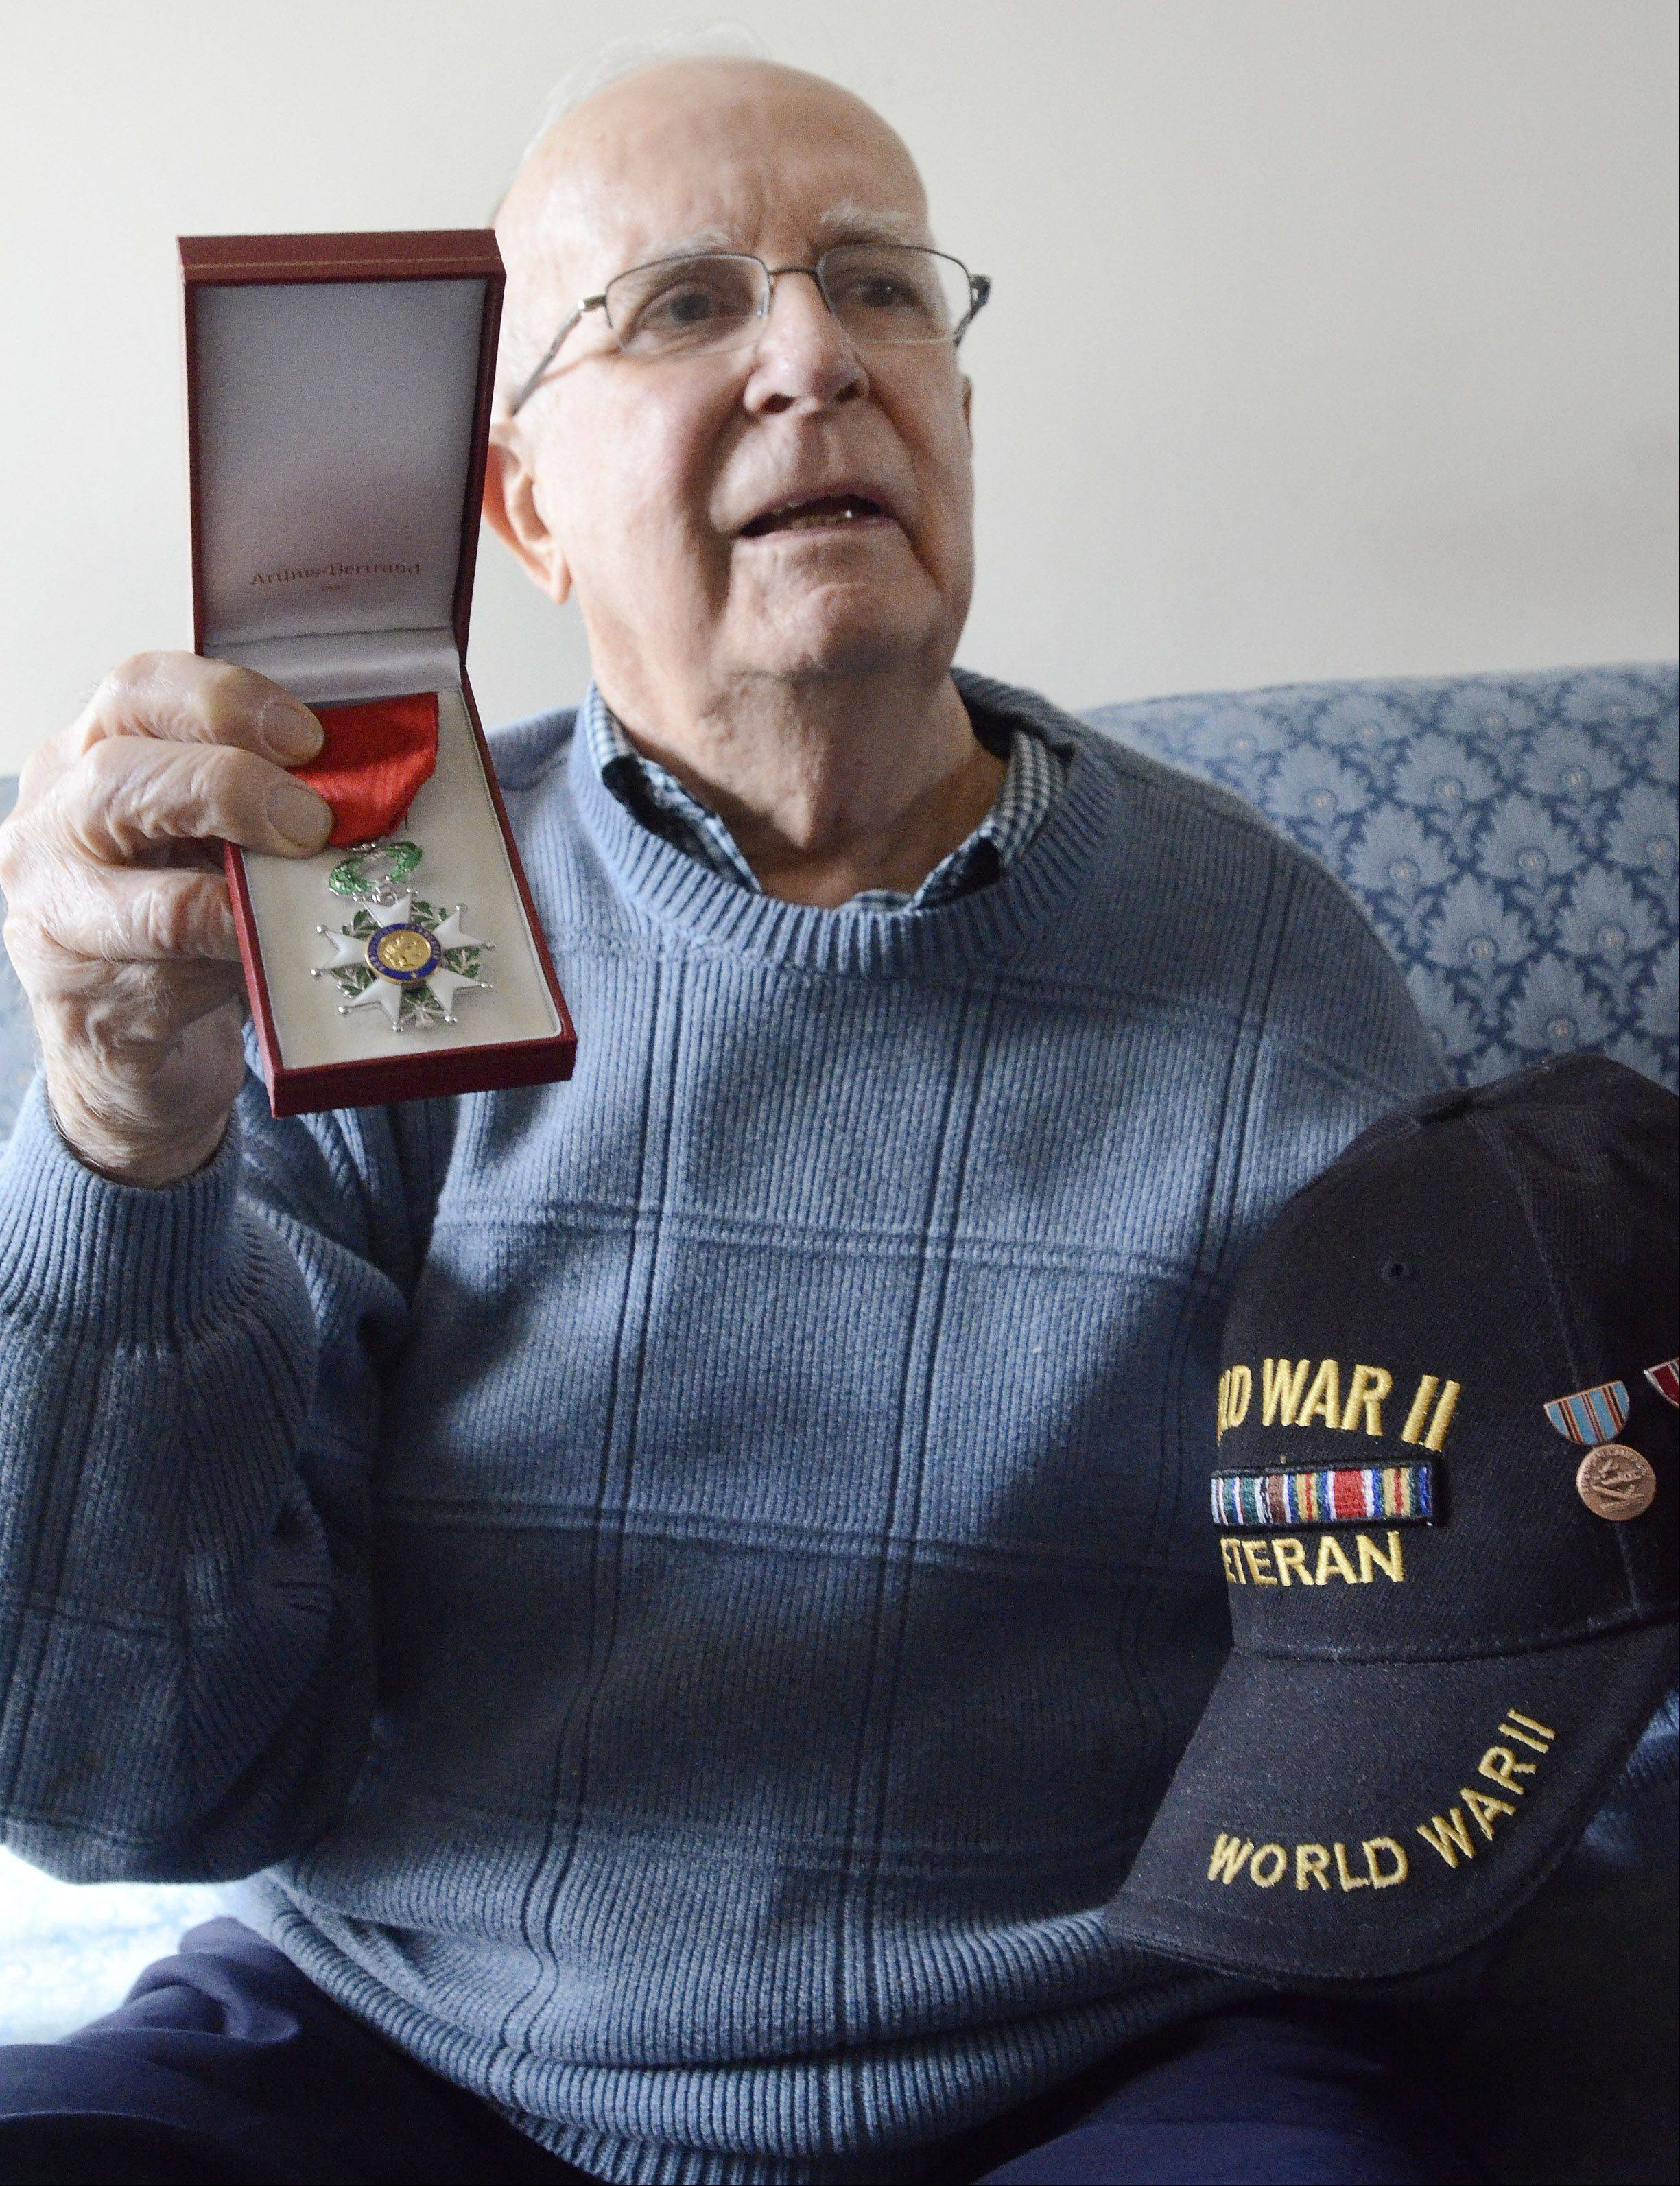 Schaumburg D-Day and Battle of the Bulge veteran Jim Butz has been awarded the French Legion of Honor medal. The award, created by Napoleon in 1802, recognizes extraordinary contributions to France.